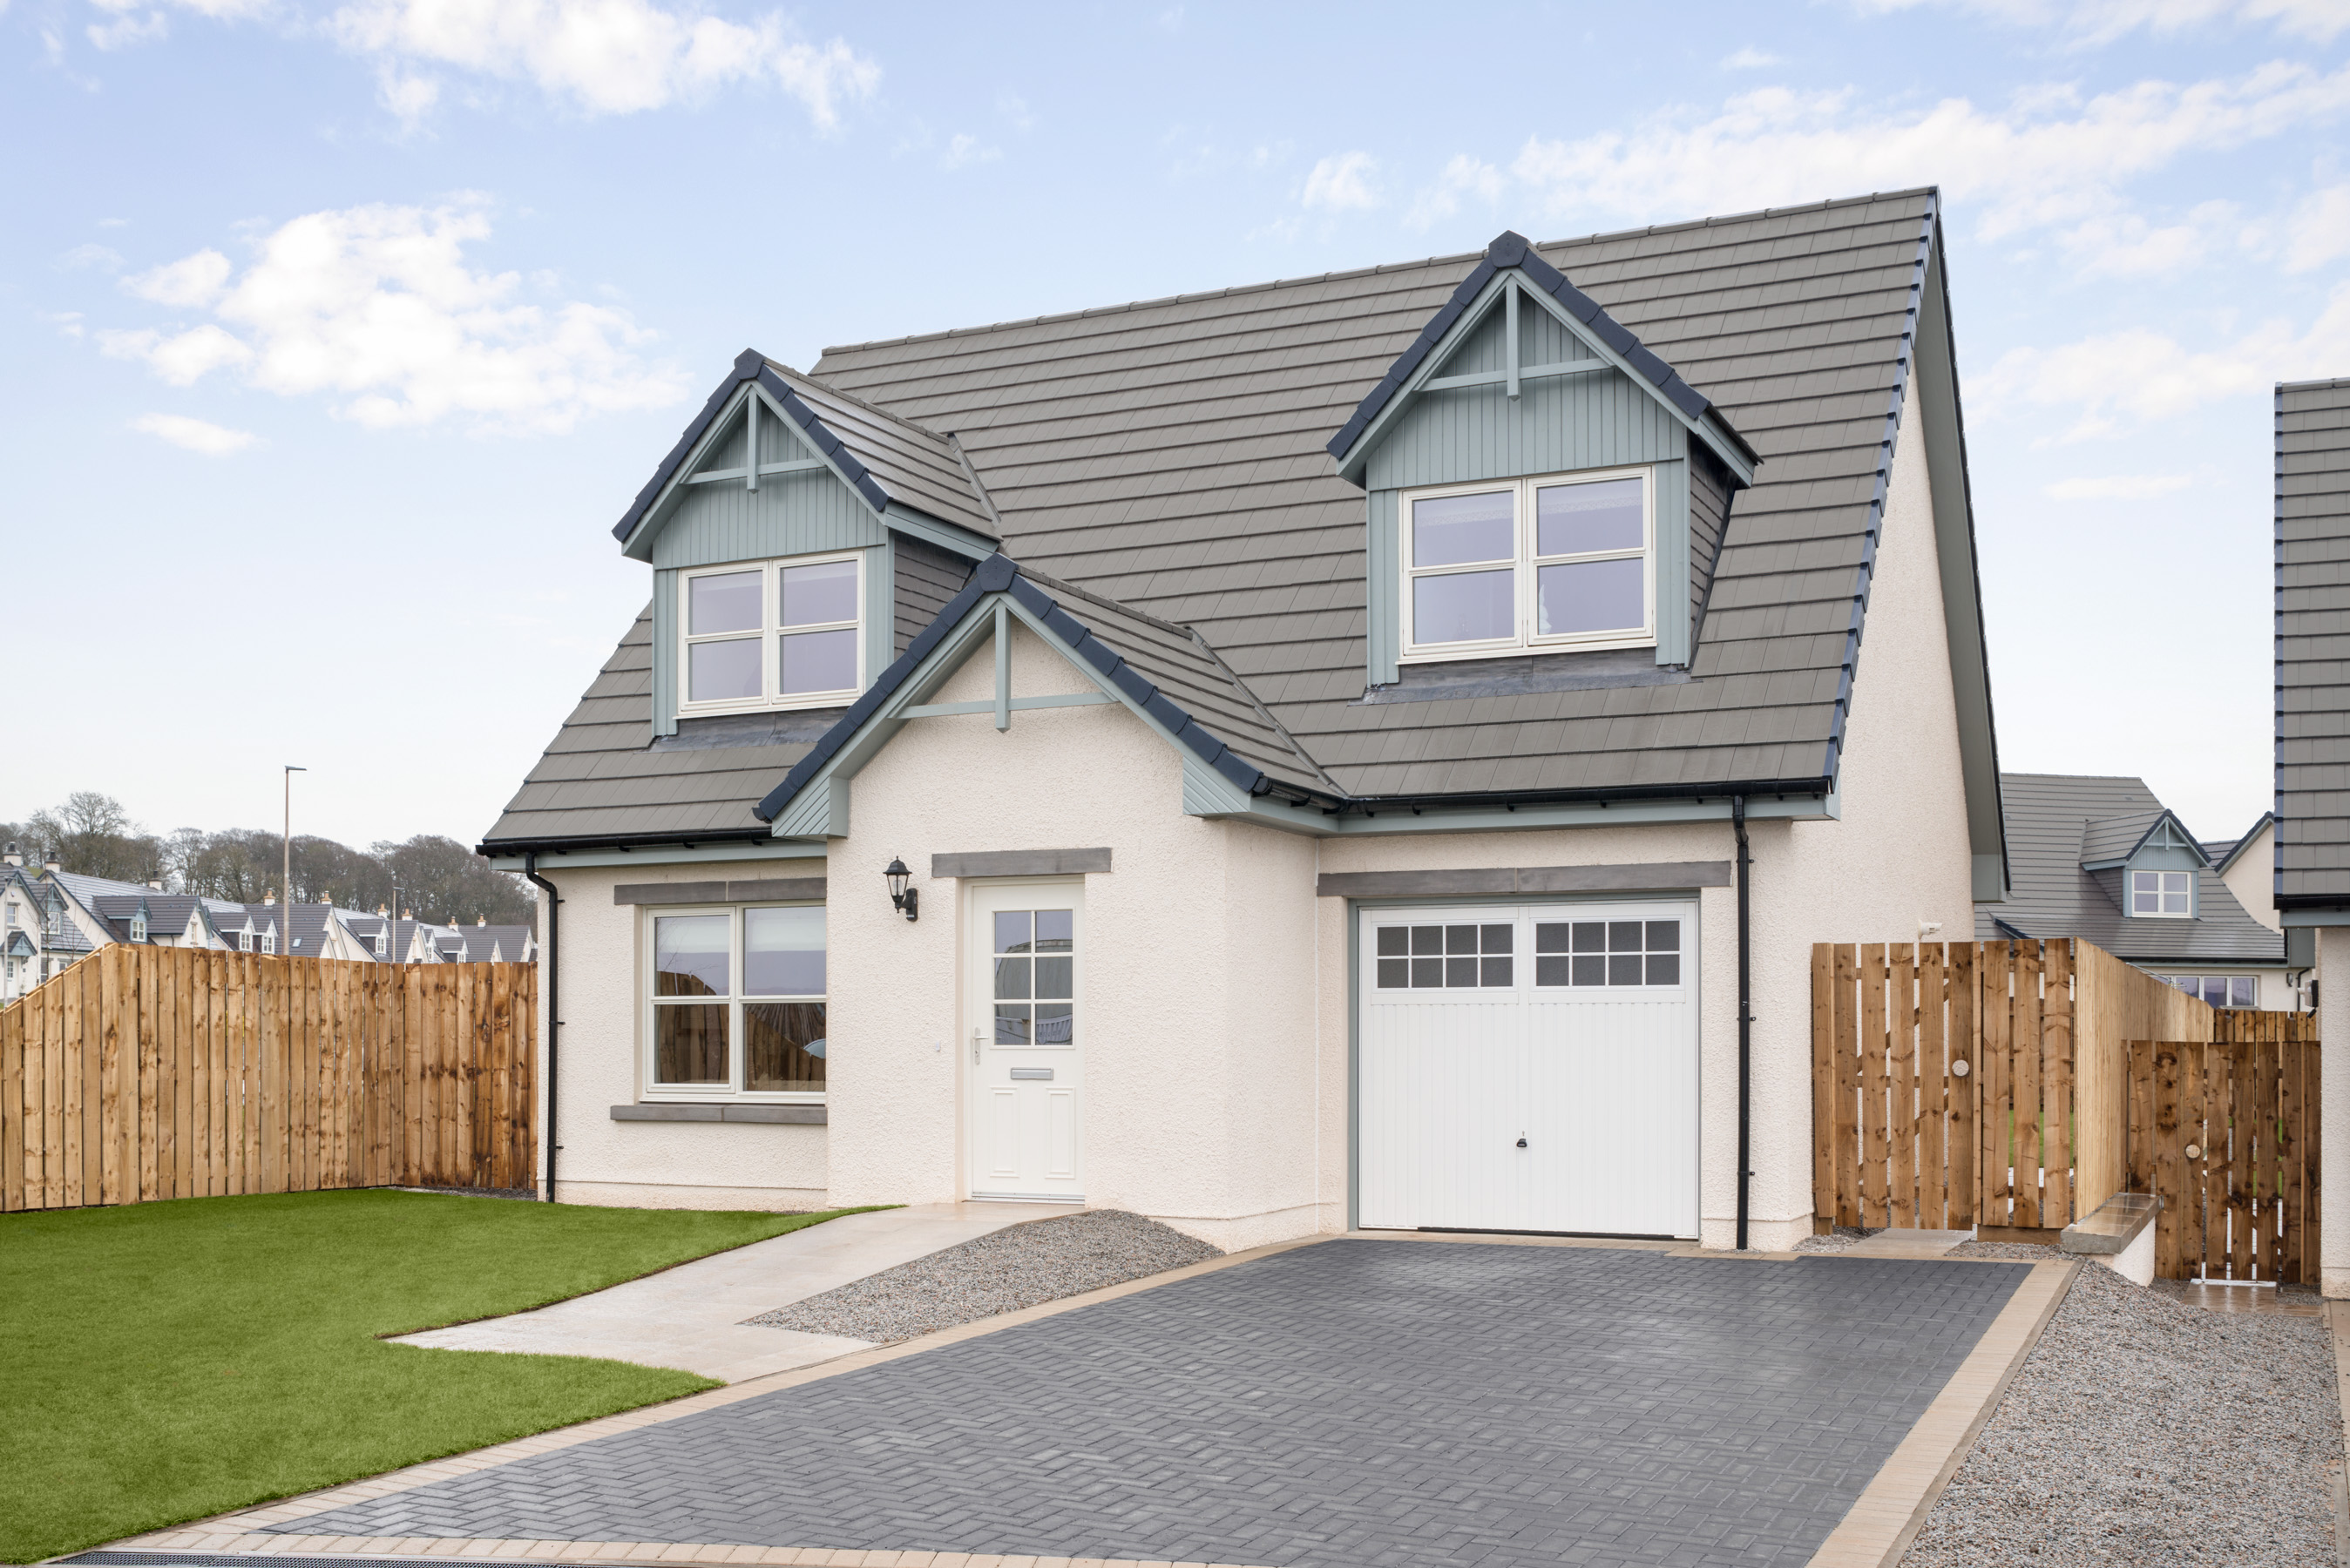 Plot 163 - The Craig - Kingsford Rise